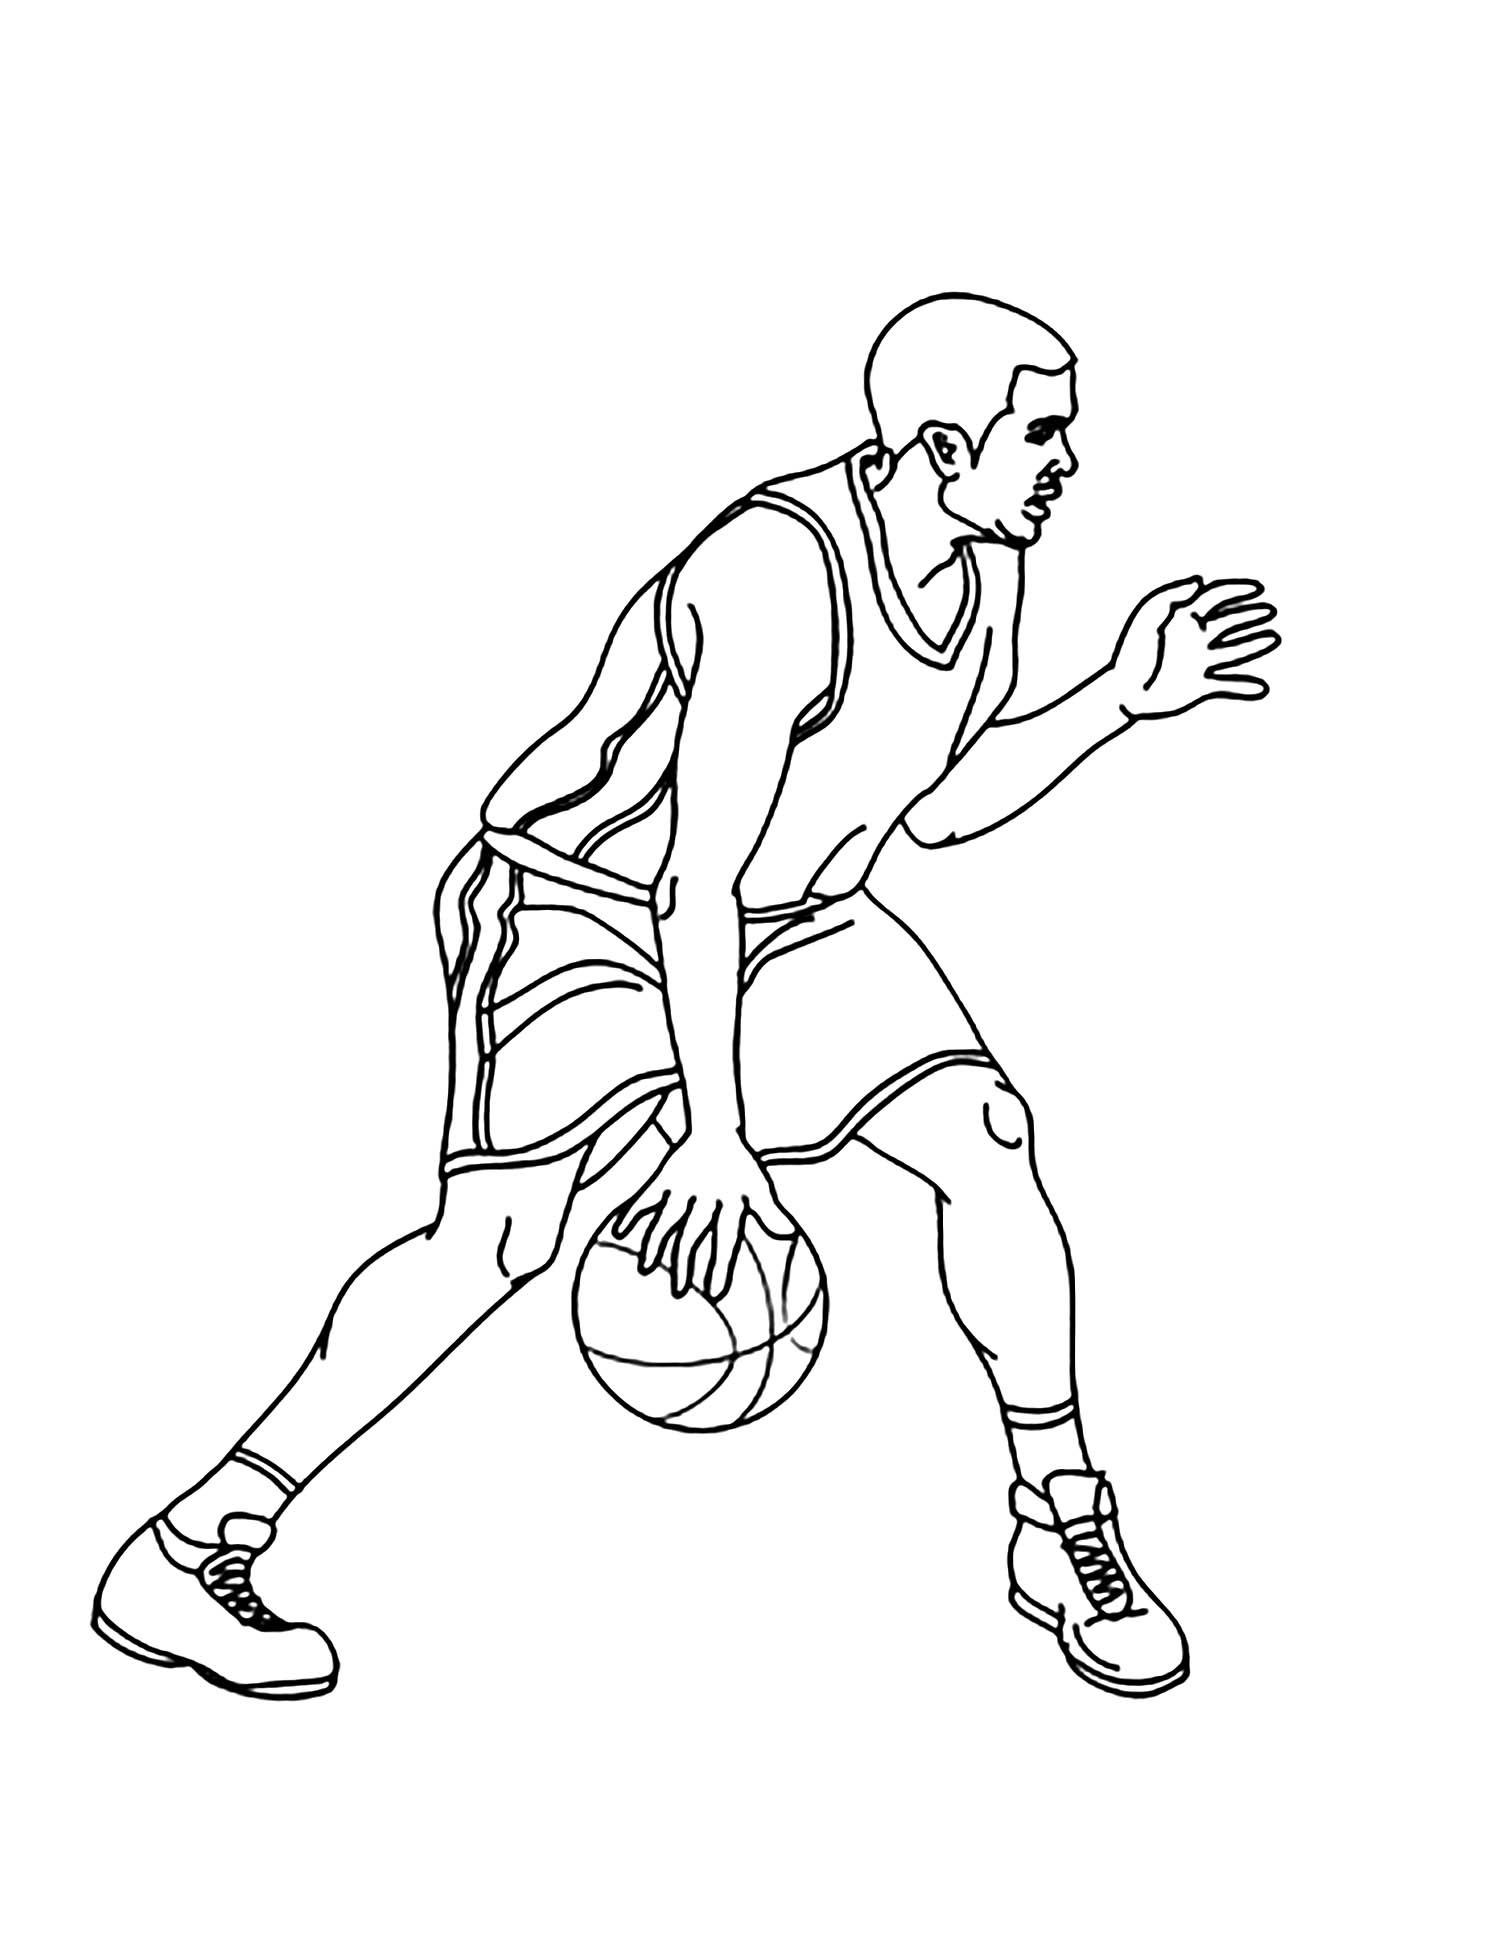 Cute free Basketball coloring page to download